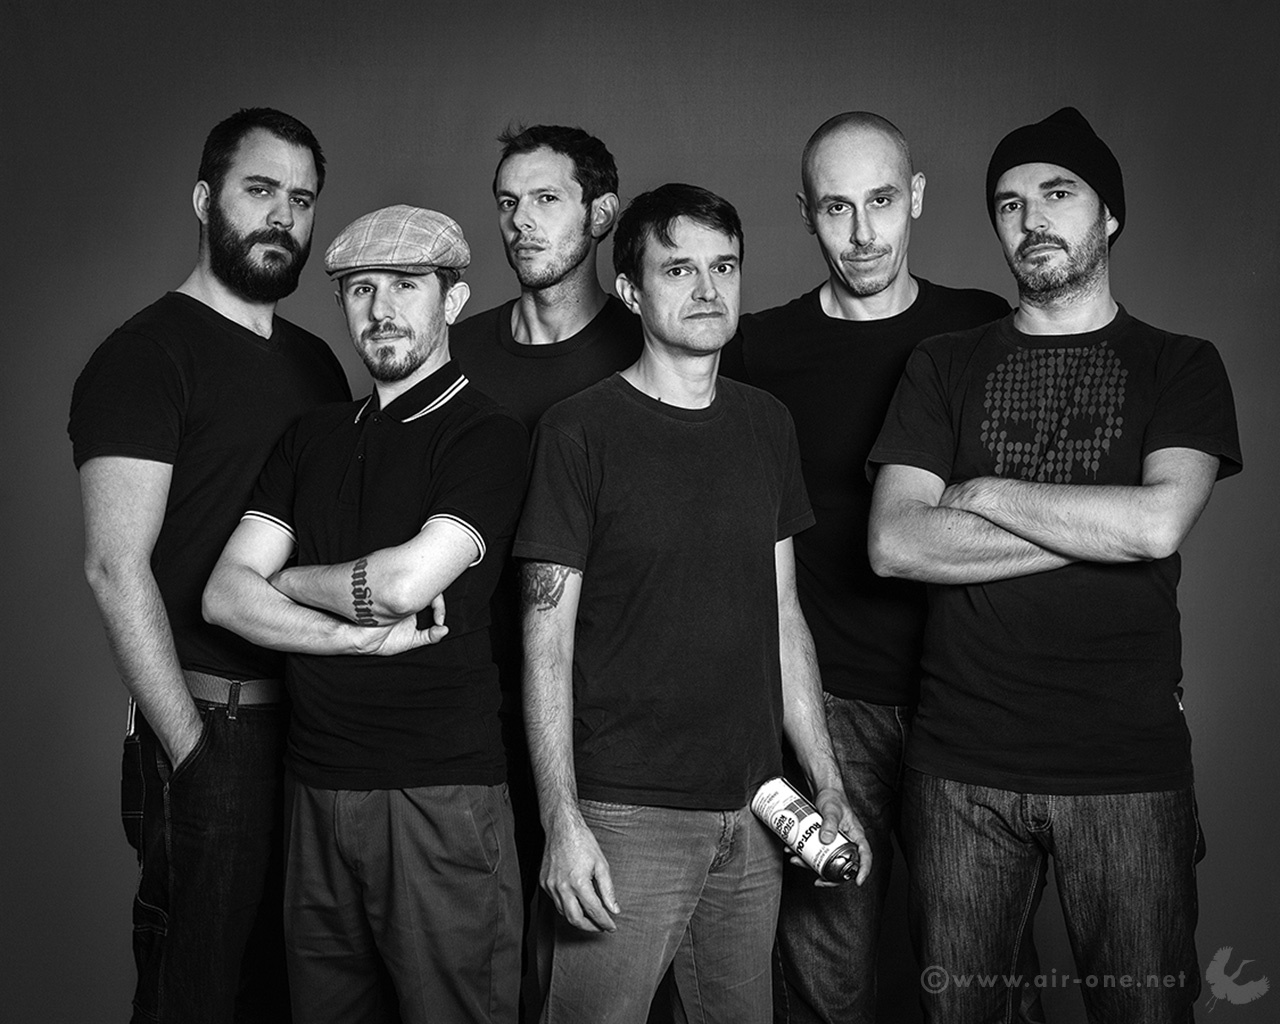 THP Crew by Marina Alessi - October 2014